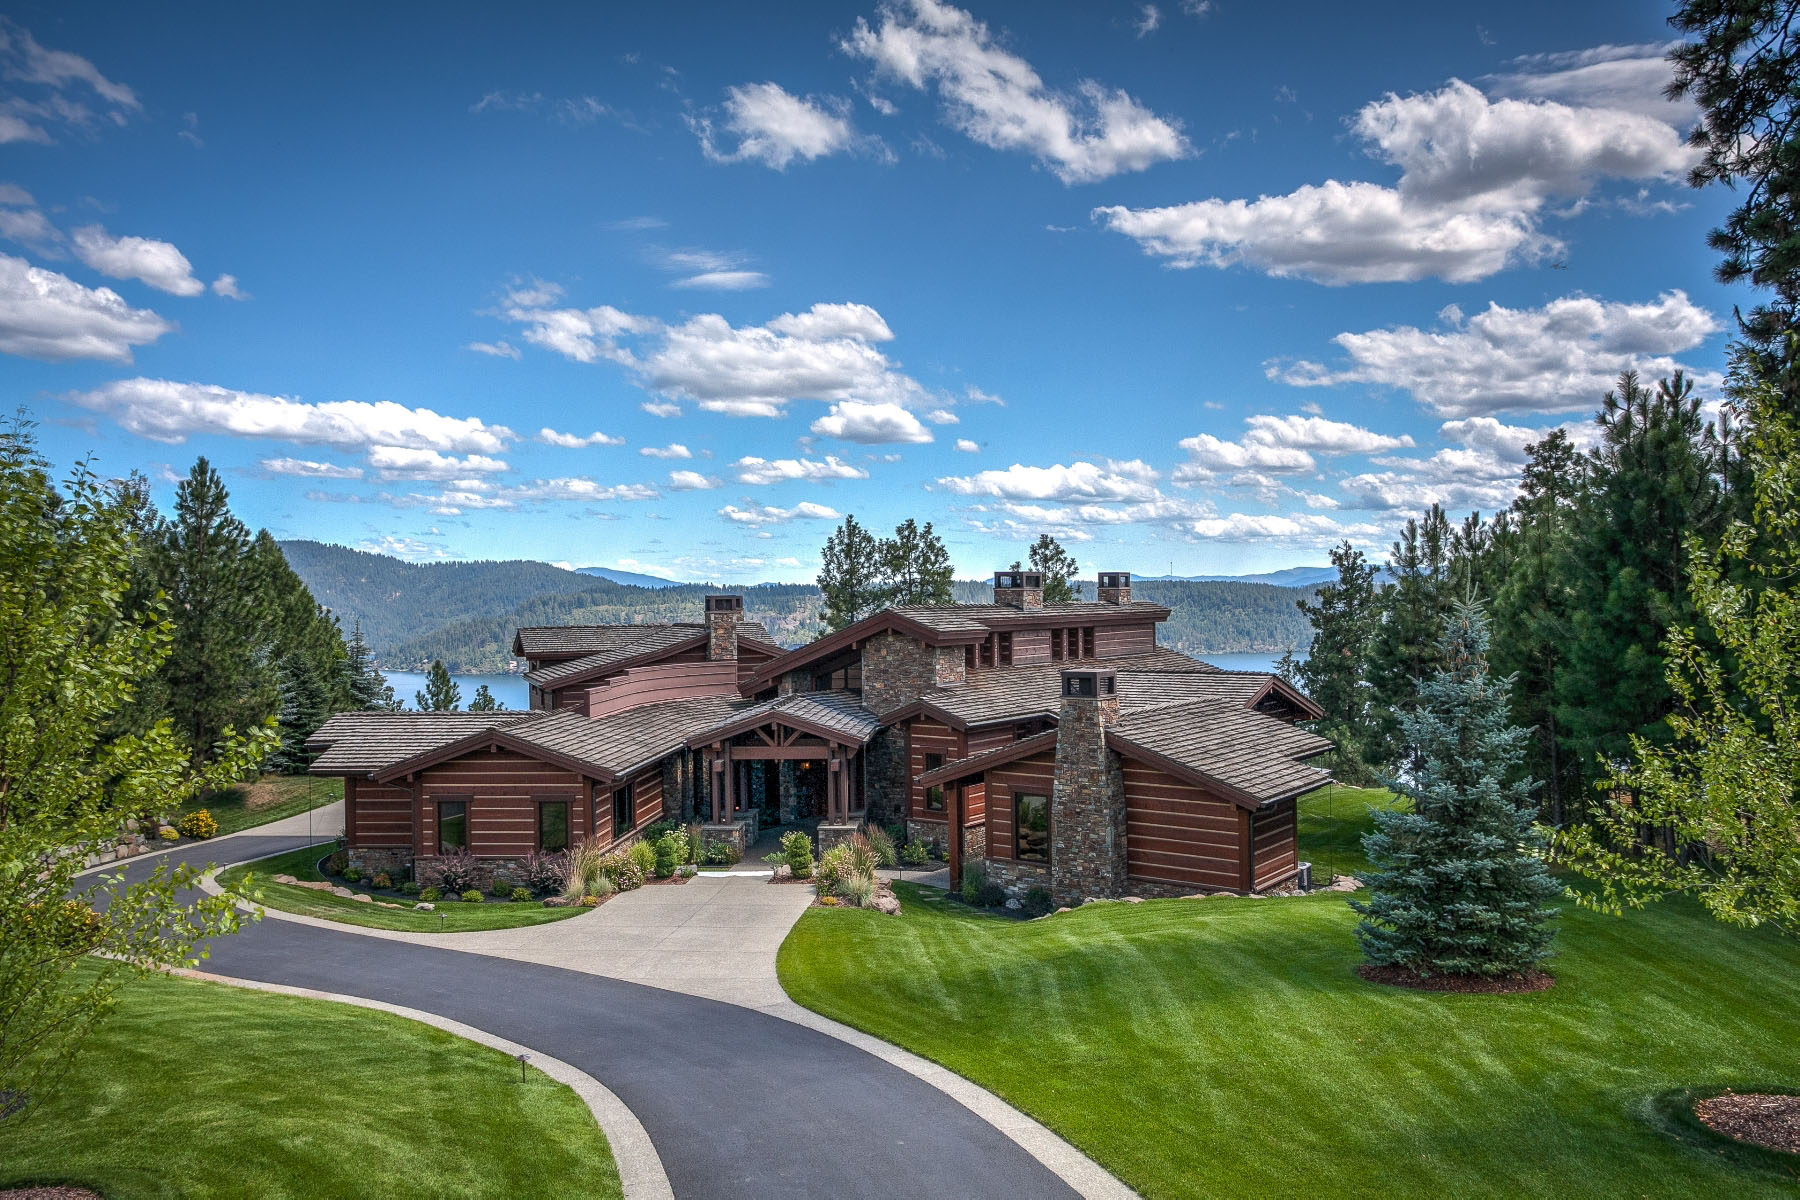 Single Family Home for Sale at Contemporary Mountain Style 6252 W Platinum Dr Coeur D Alene, Idaho, 83814 United States